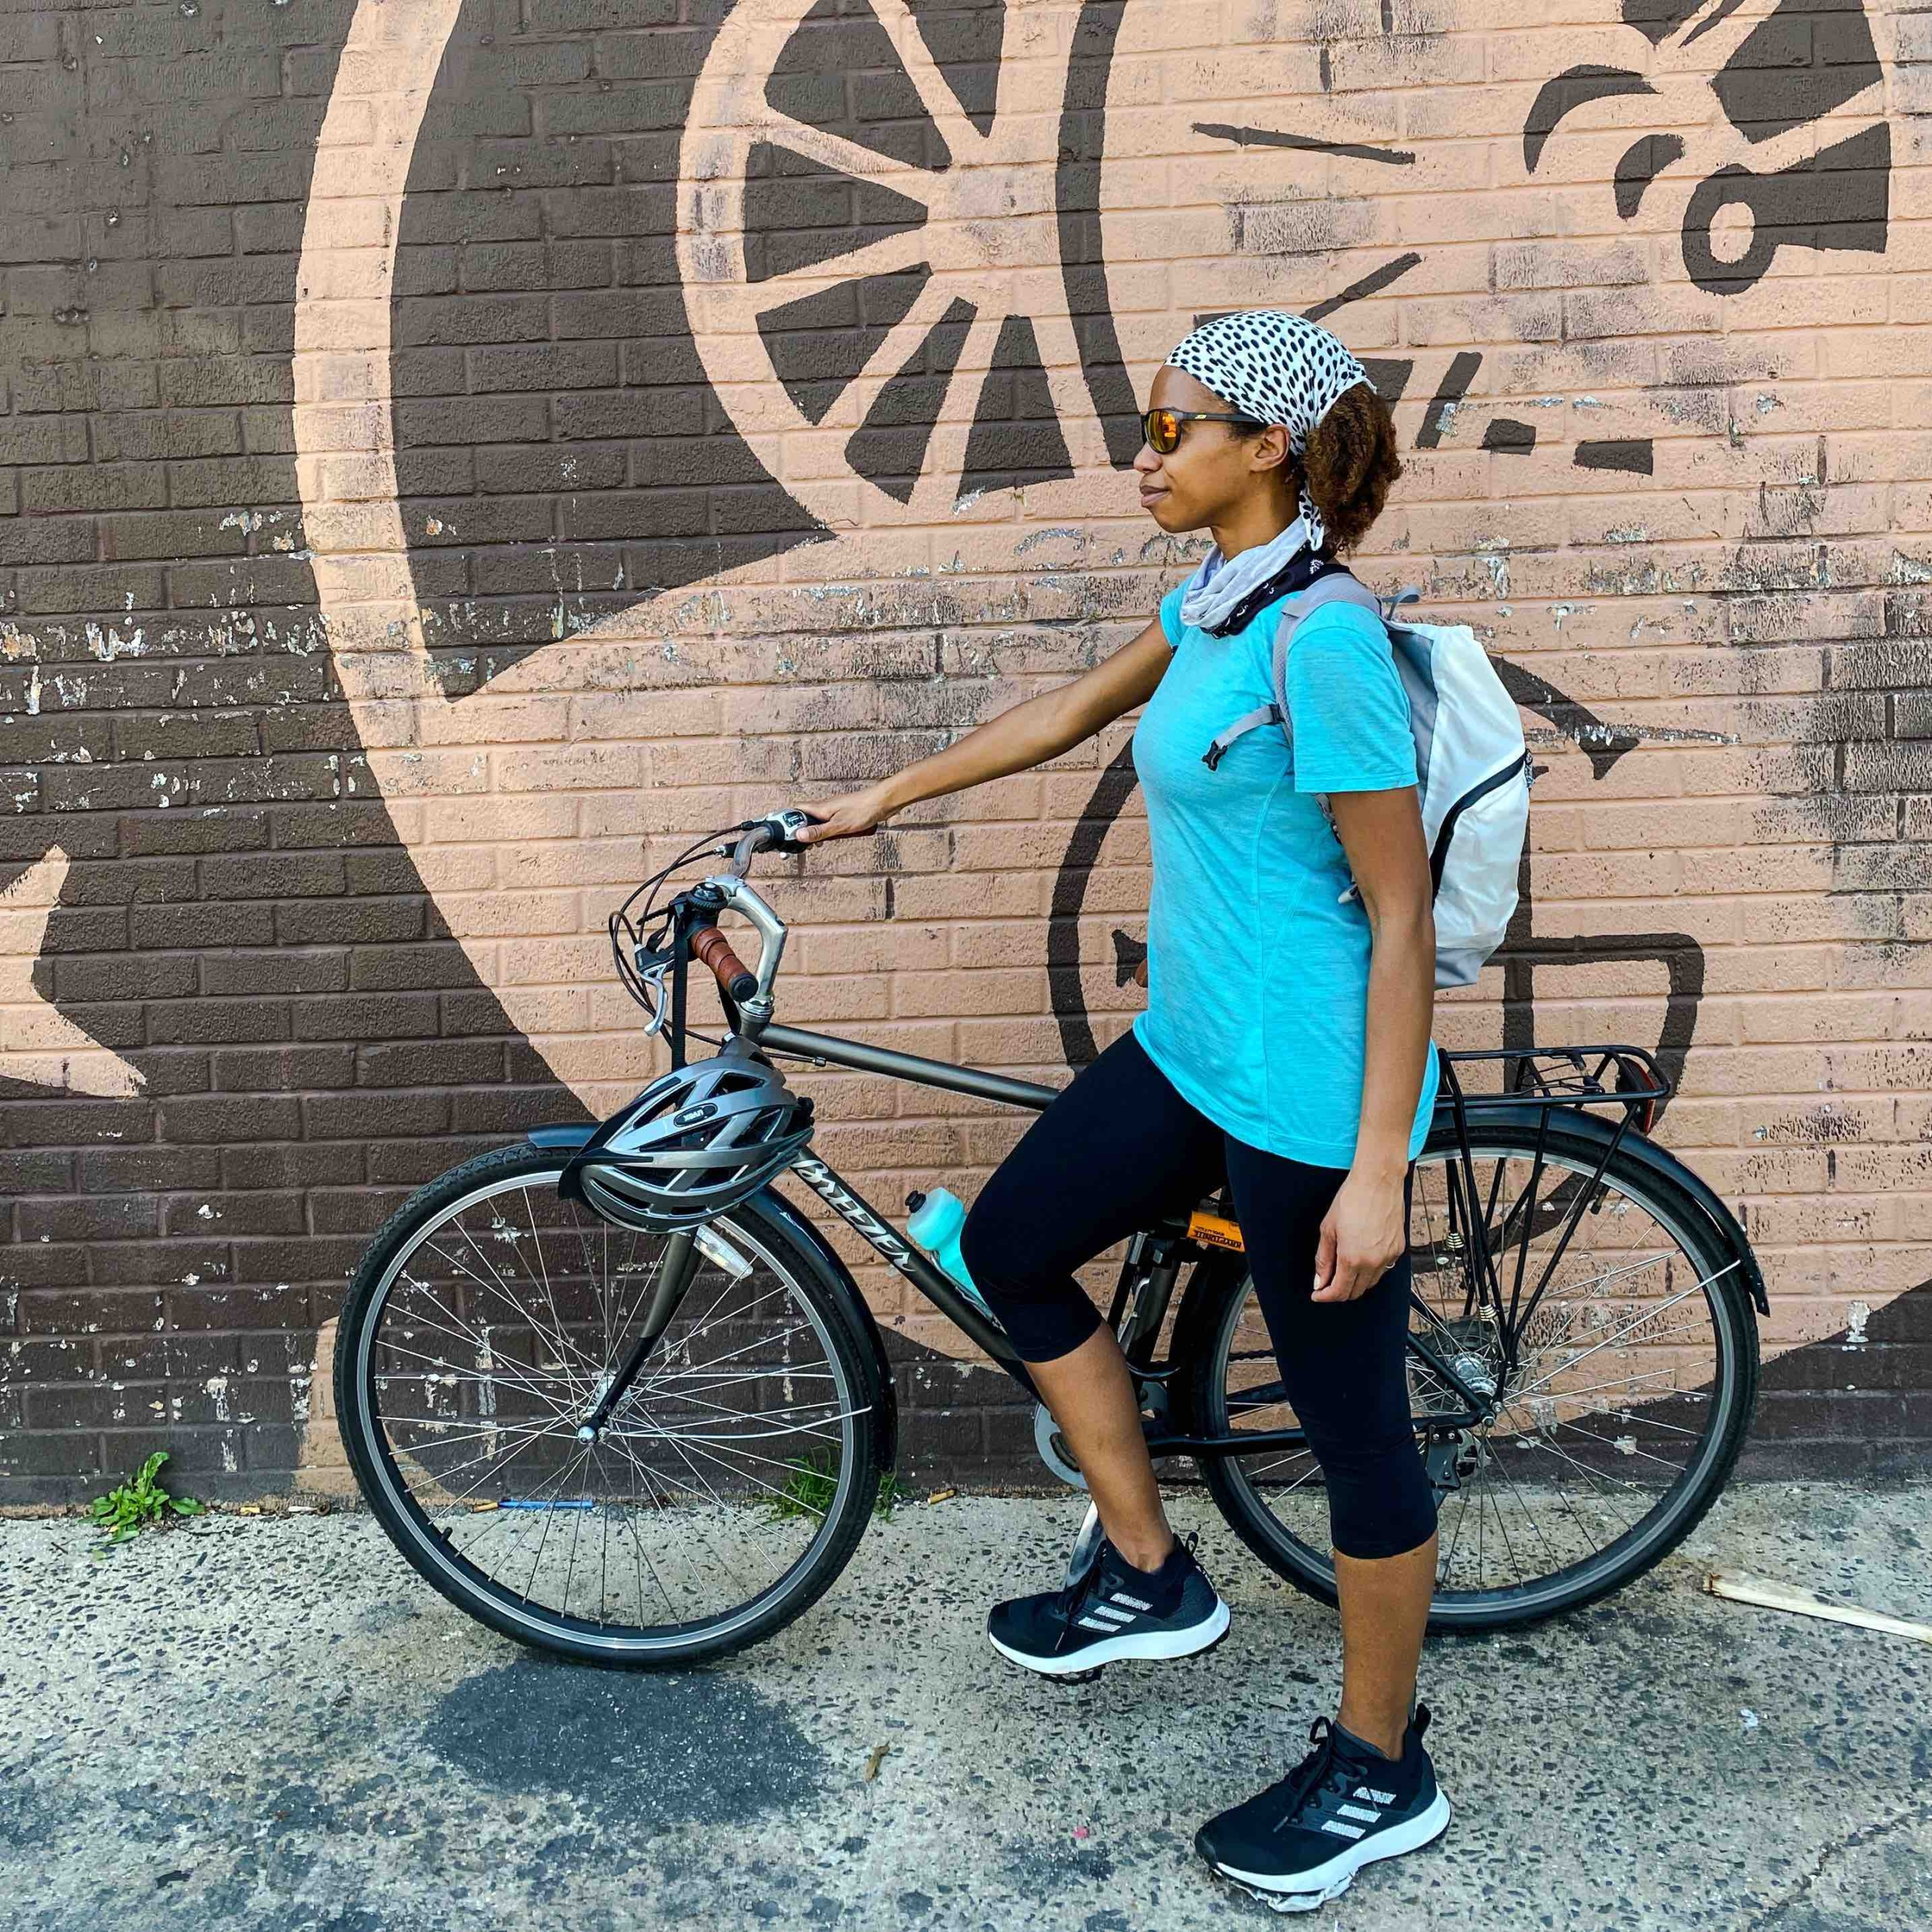 Where To Bike Next? Bicycle Sundays Are Back For Cyclists To Ride Car Free